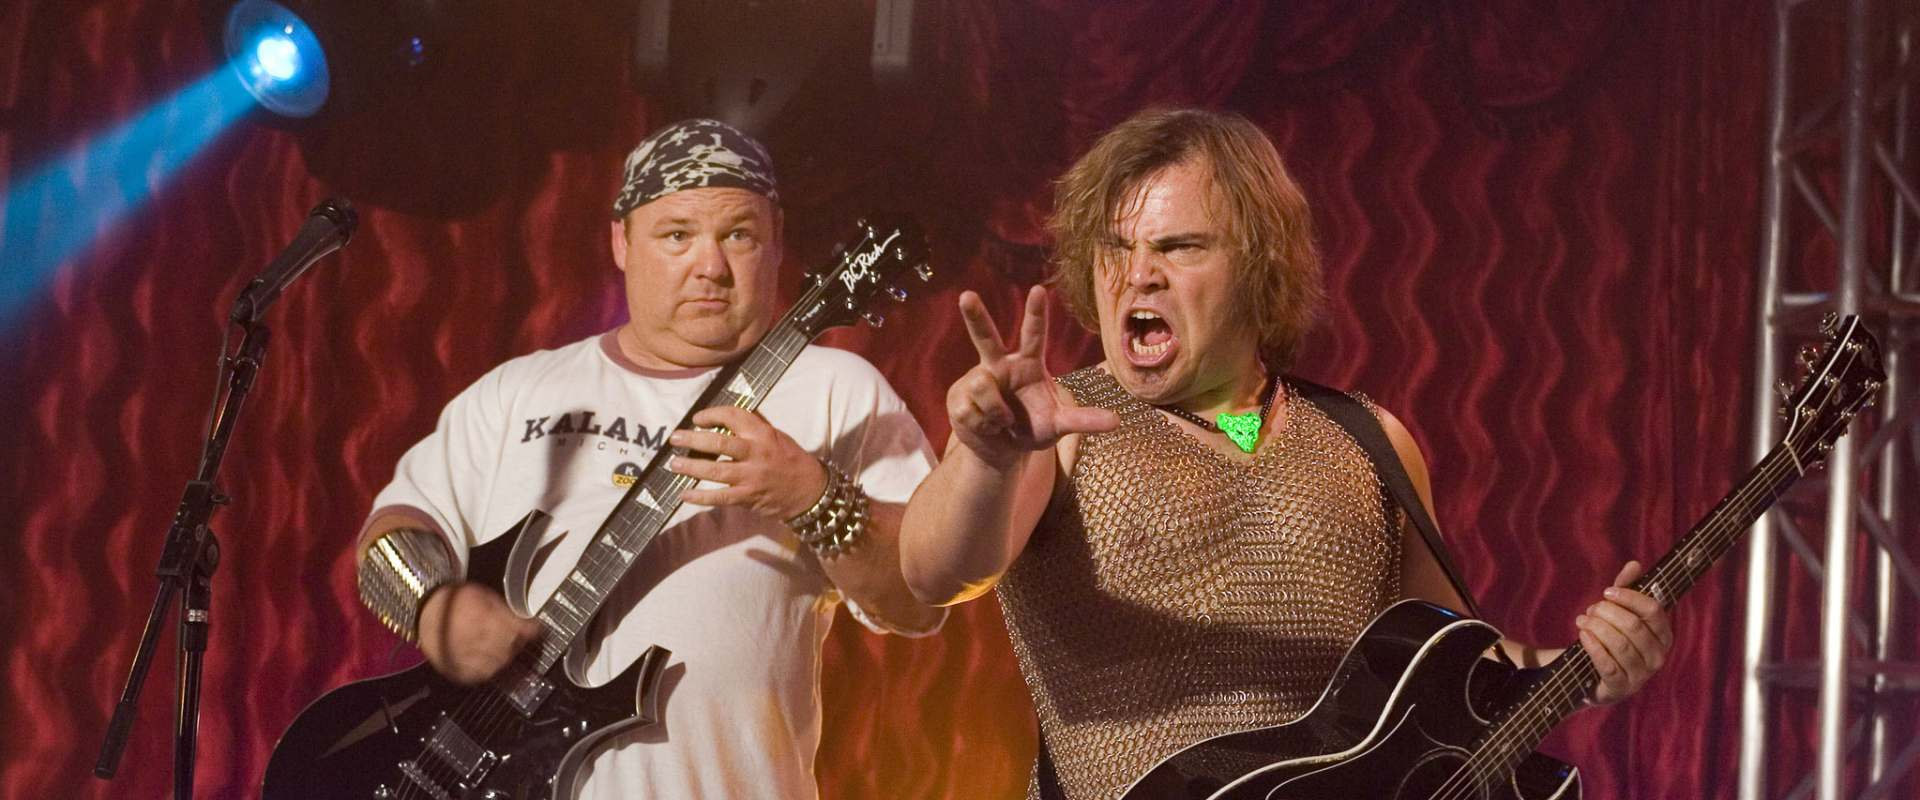 Tenacious D in The Pick of Destiny background 1